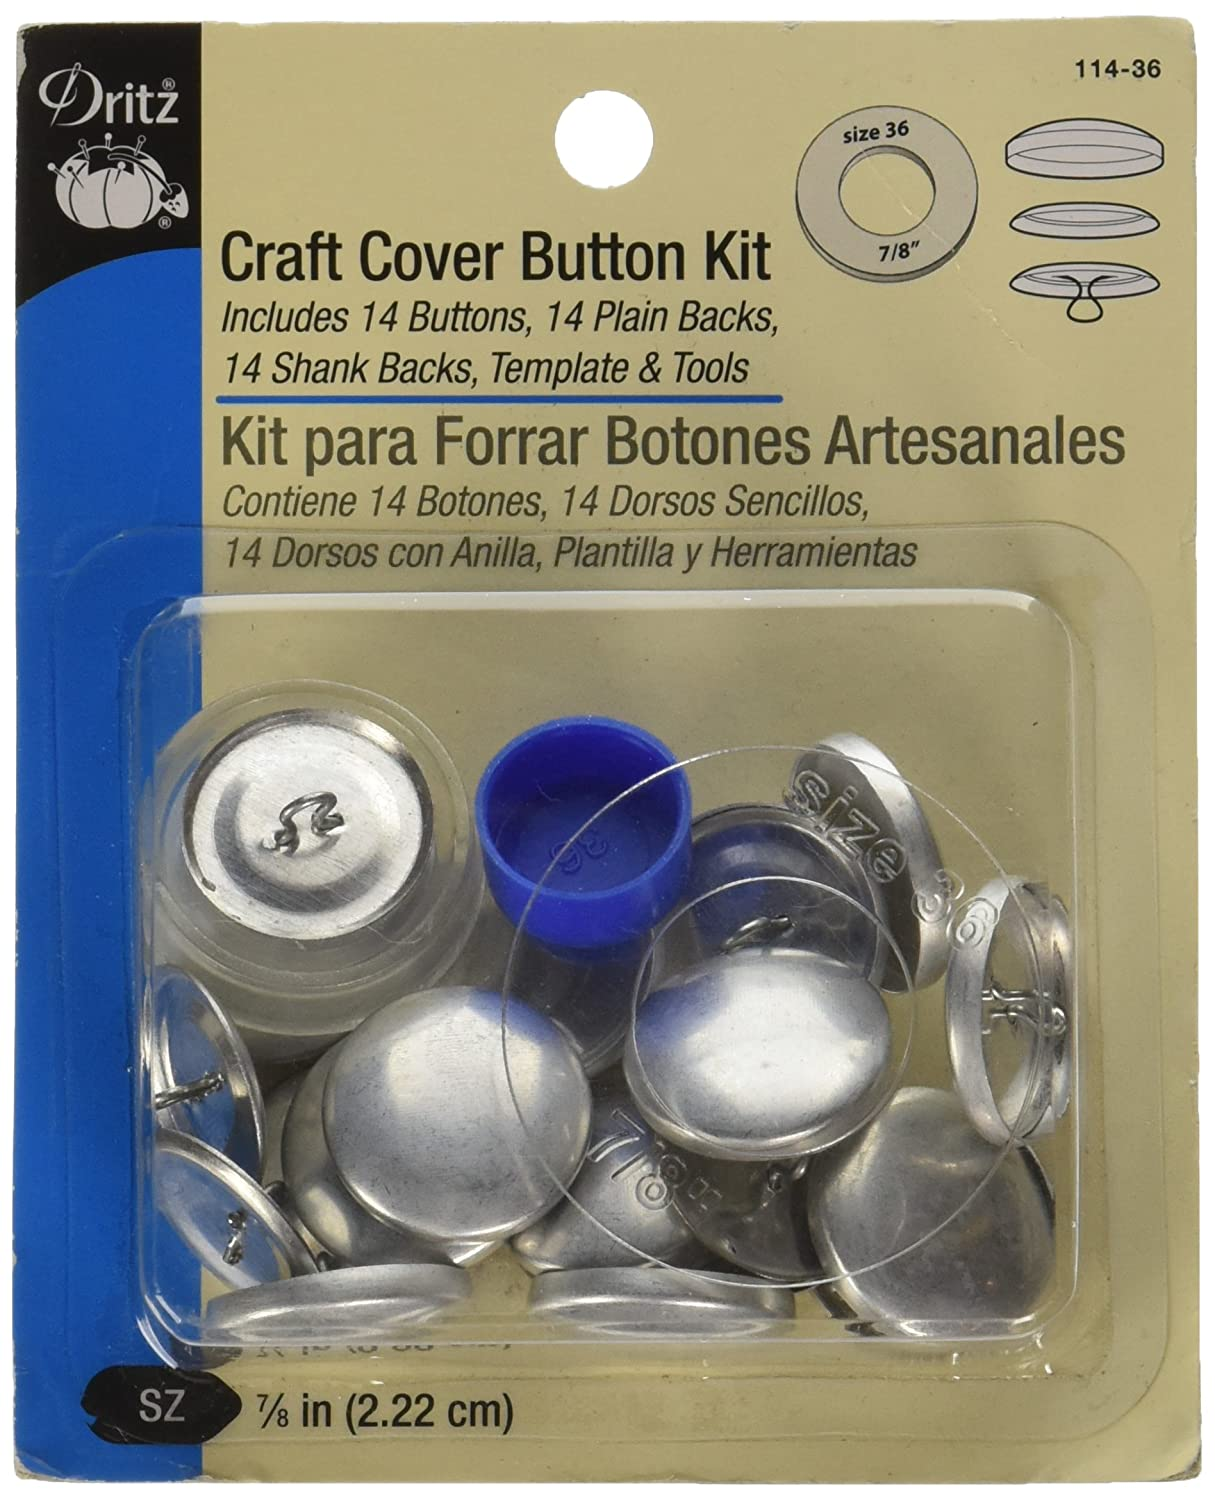 Dritz Craft Cover Button Kit, Size 36 114-36